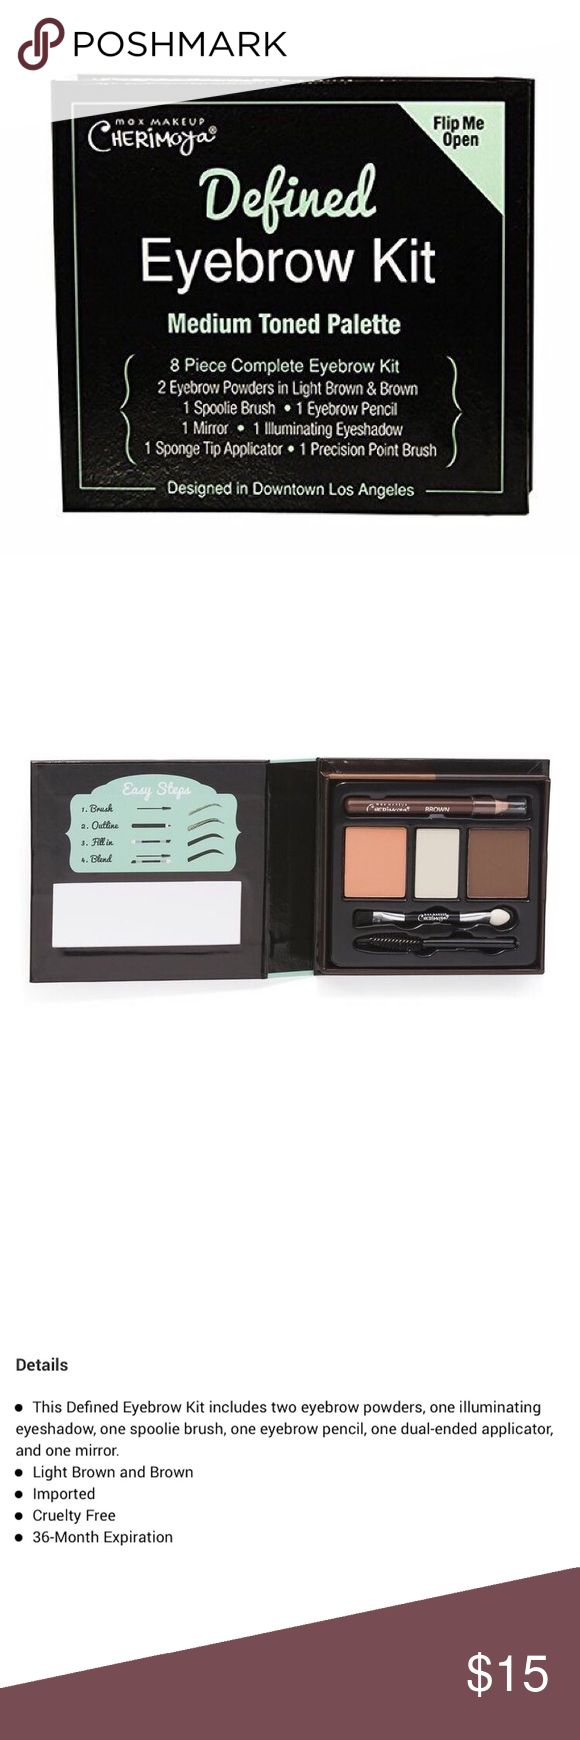 🆕[max makeup cherimoya] defined eyebrow kit • style name: defined eyebrow kit • color: medium toned • see above for details from company website • condition: new, never used ____________________________________________________ ✅ make an offer!     ✅ i bundle! ✅ posh compliant closet ⛔️ no trades 🛍 boutique item Max Makeup Cherimoya Makeup Eyebrow Filler